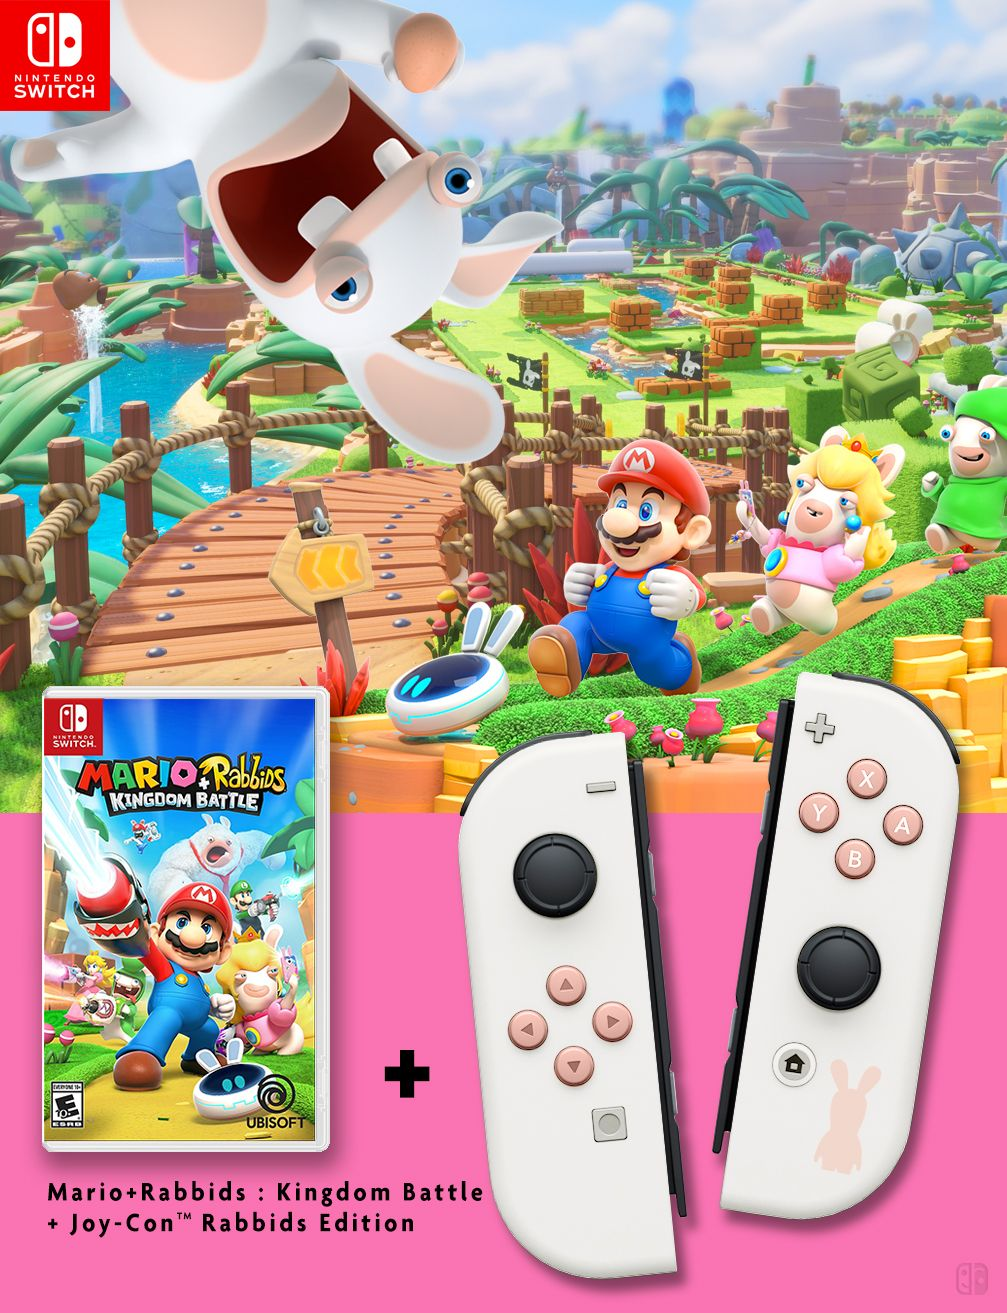 Joy-Con collector Mario + Rabbids Kingdom Battle game